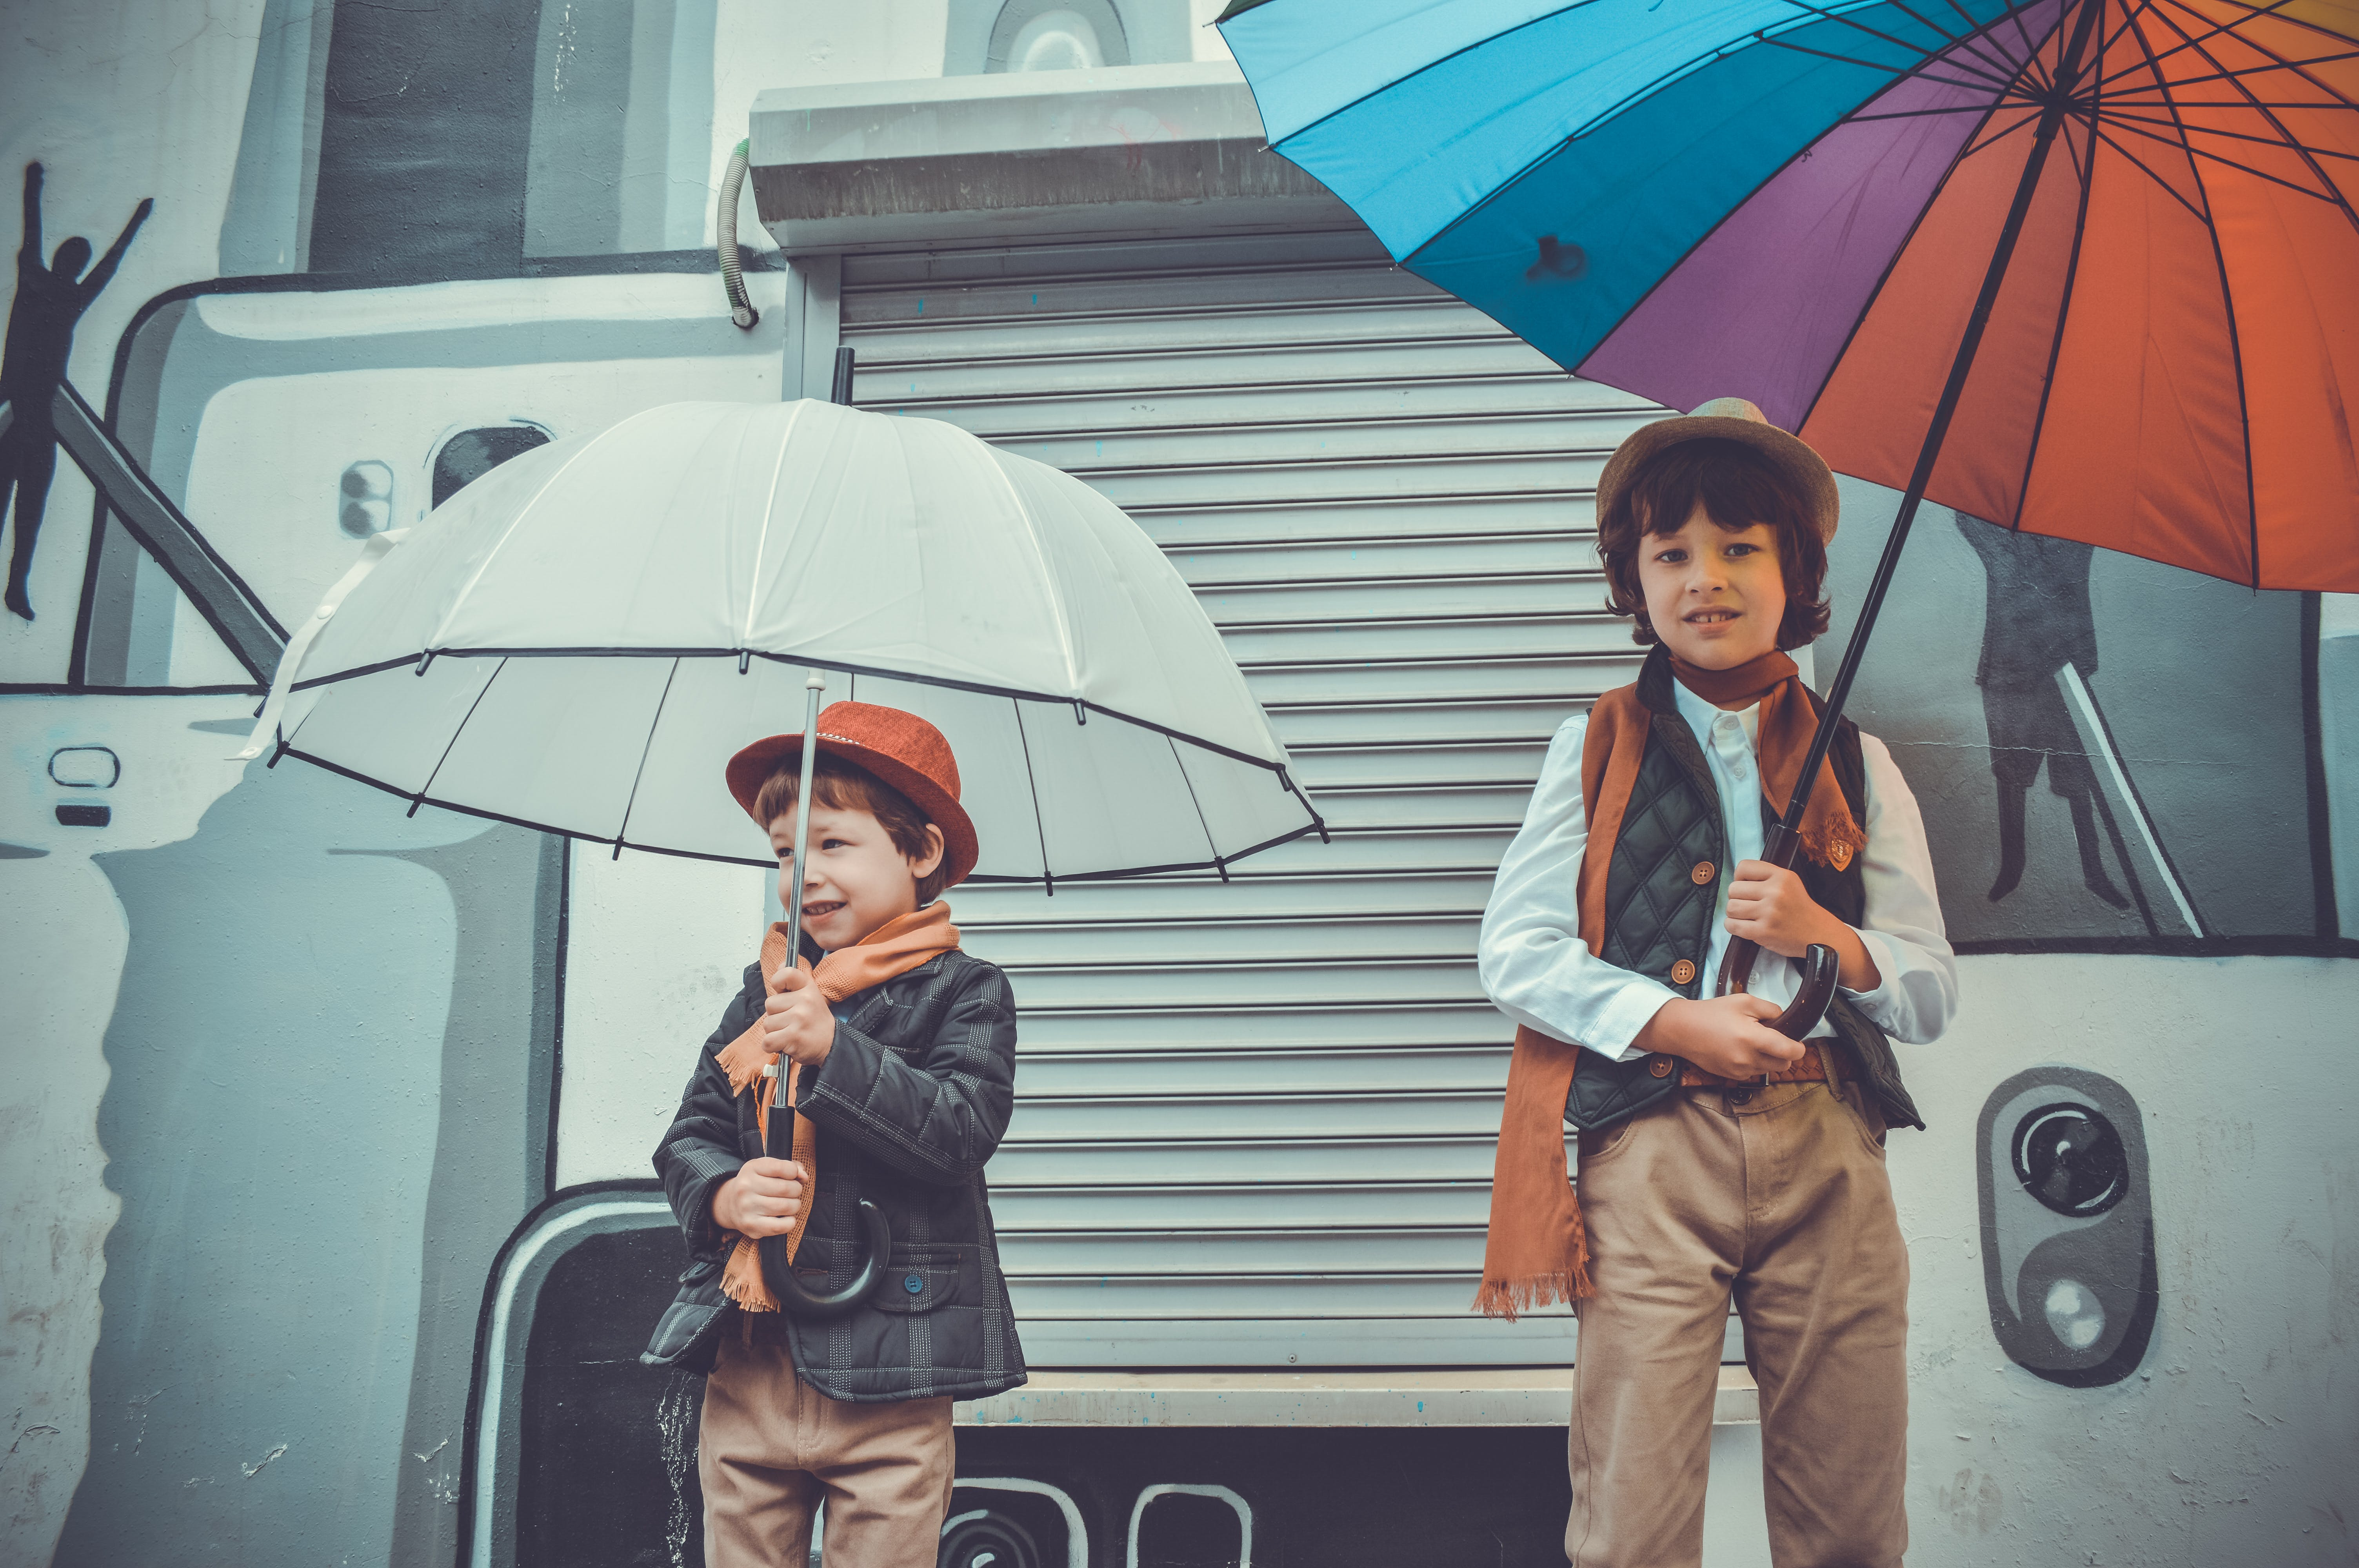 Two Children Holding Umbrellas While Smiling